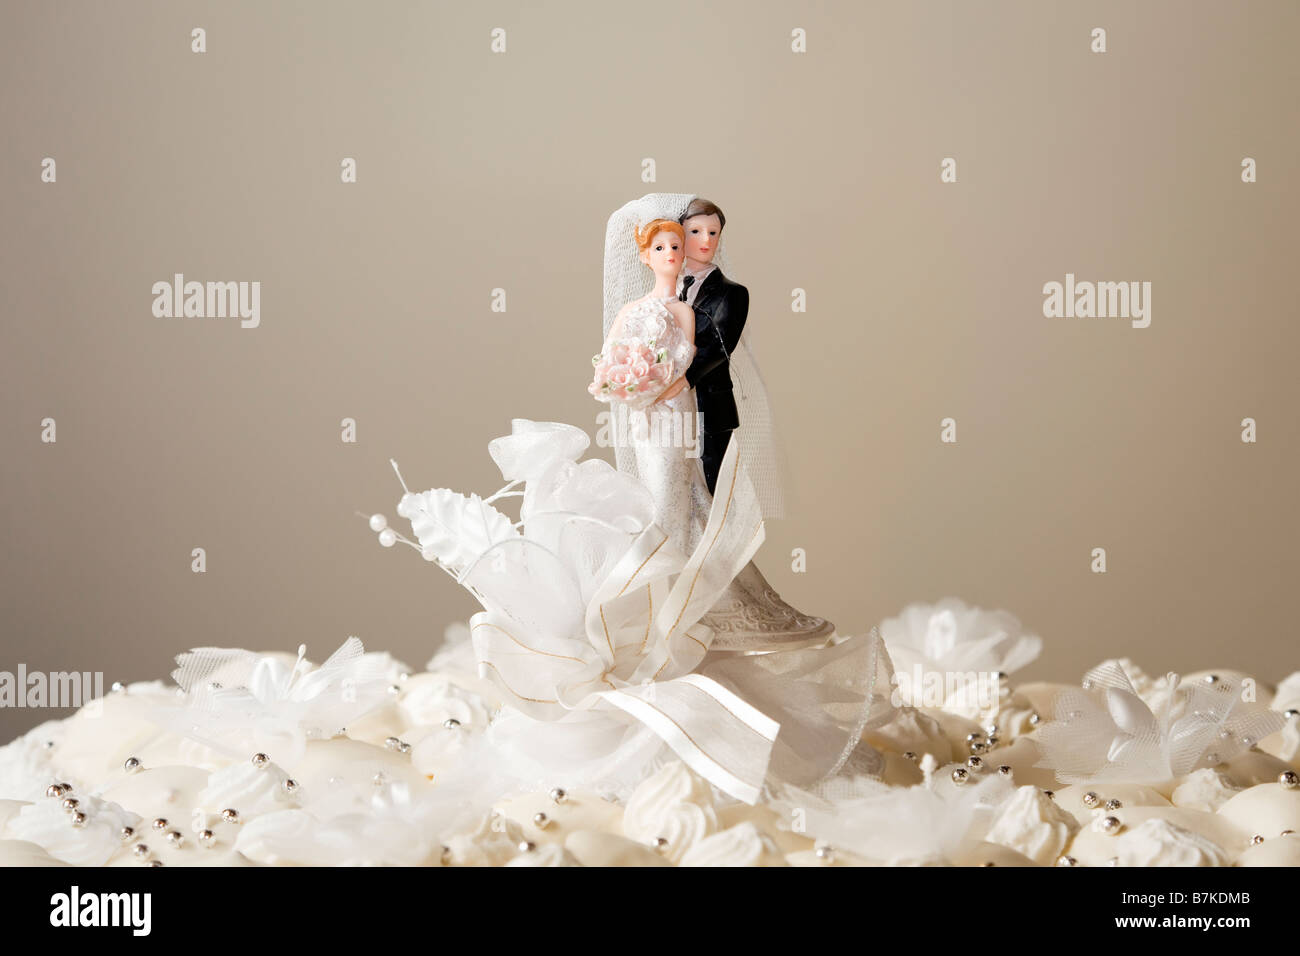 Figurines on top of wedding cake. Copy space Stock Photo: 21940811 ...